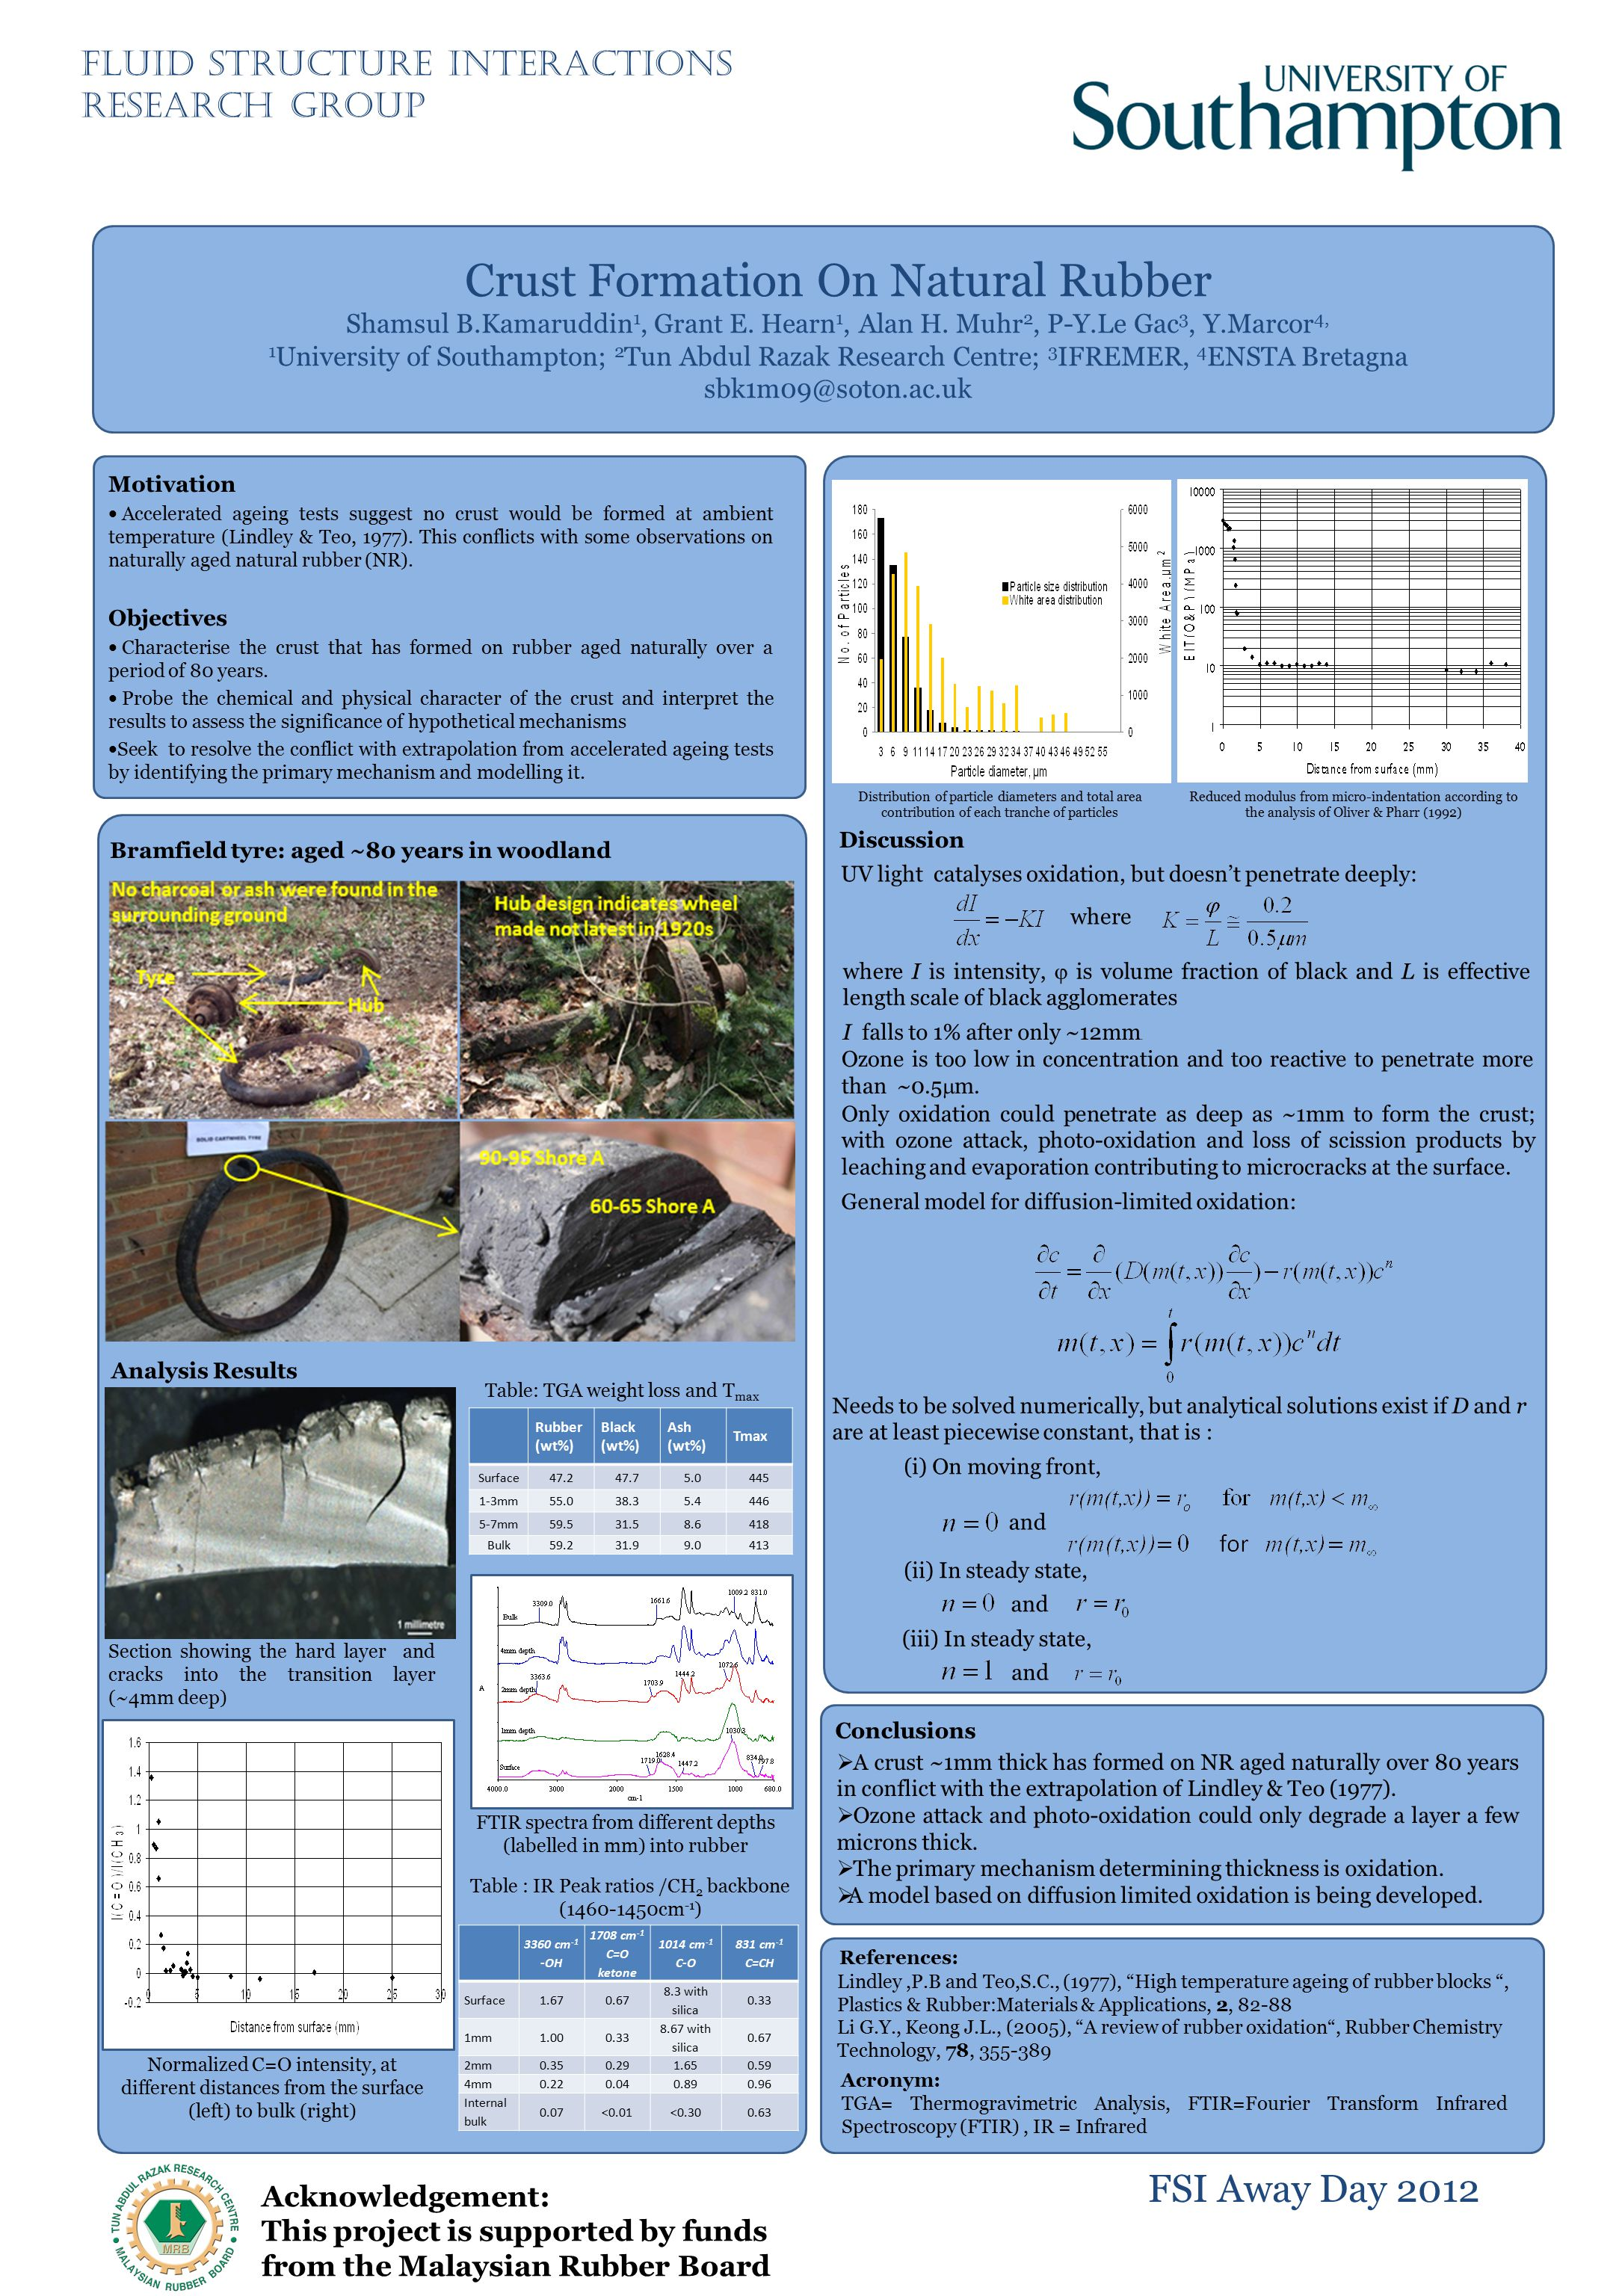 Crust Formation On Natural Rubber Shamsul B.Kamaruddin 1, Grant E.